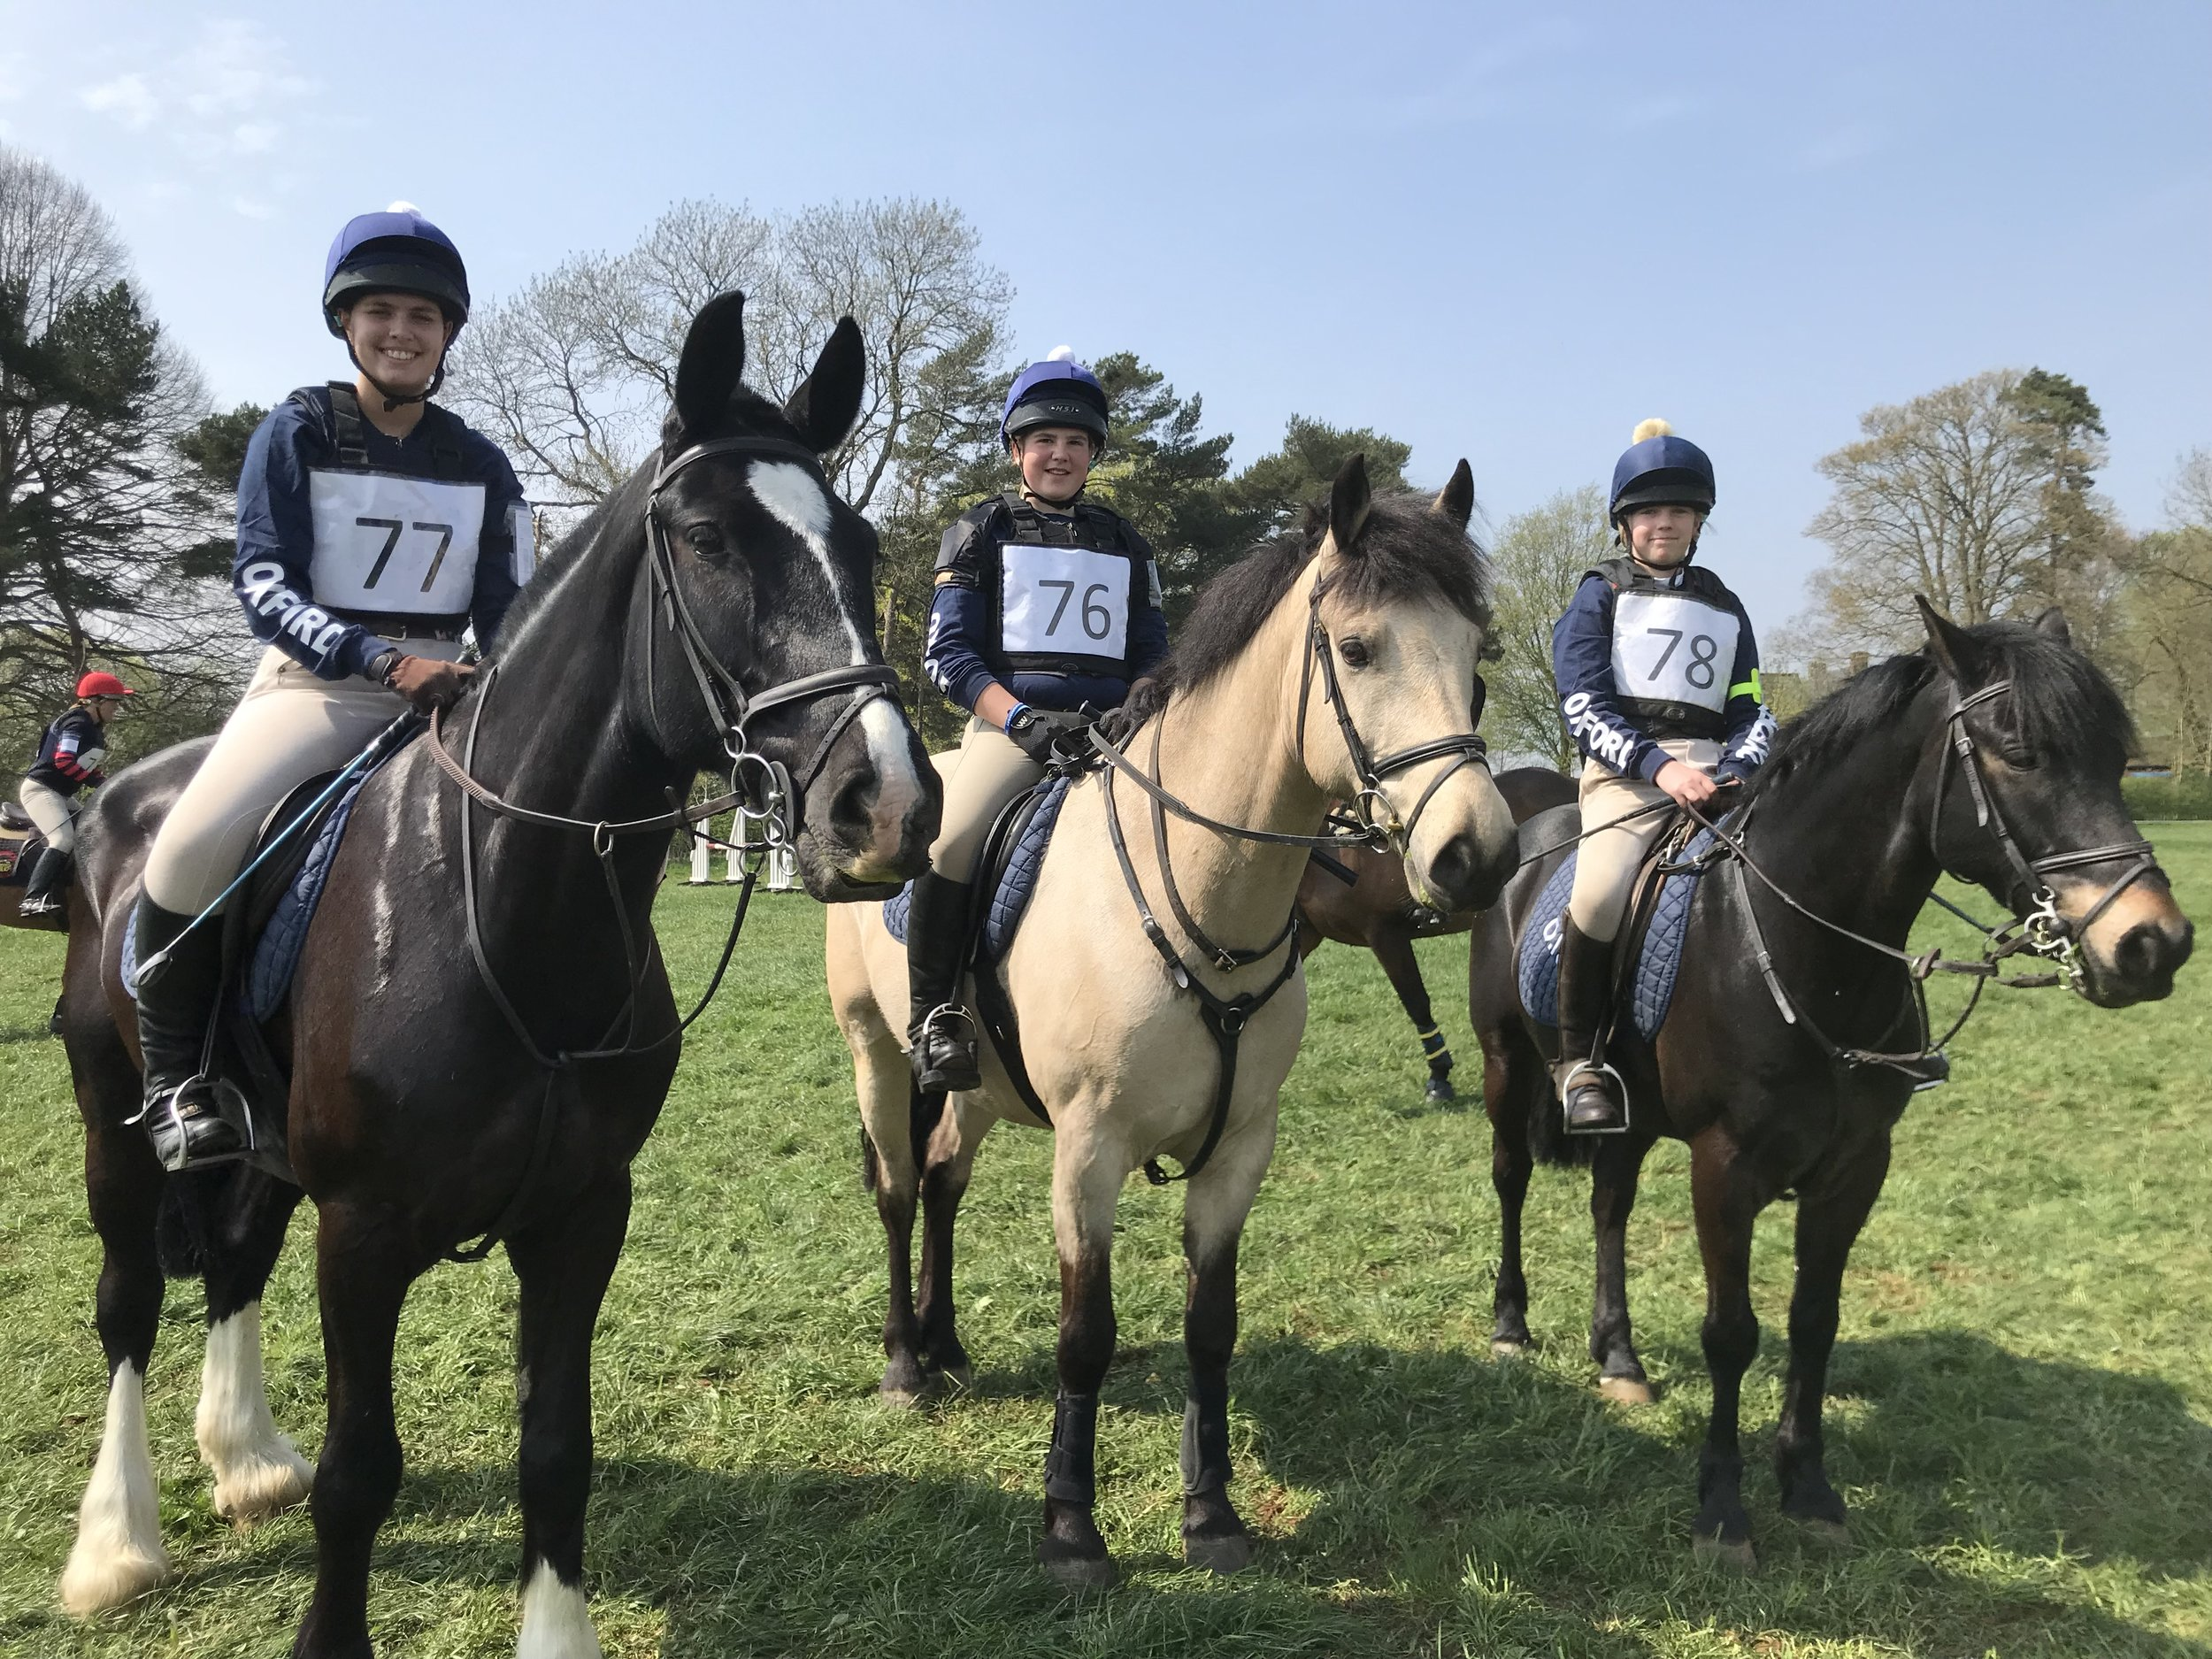 BRC AREA 5 EVENTER CHALLENGE - SWALCLIFFE PARK EQUESTRIAN21ST APRIL 2018